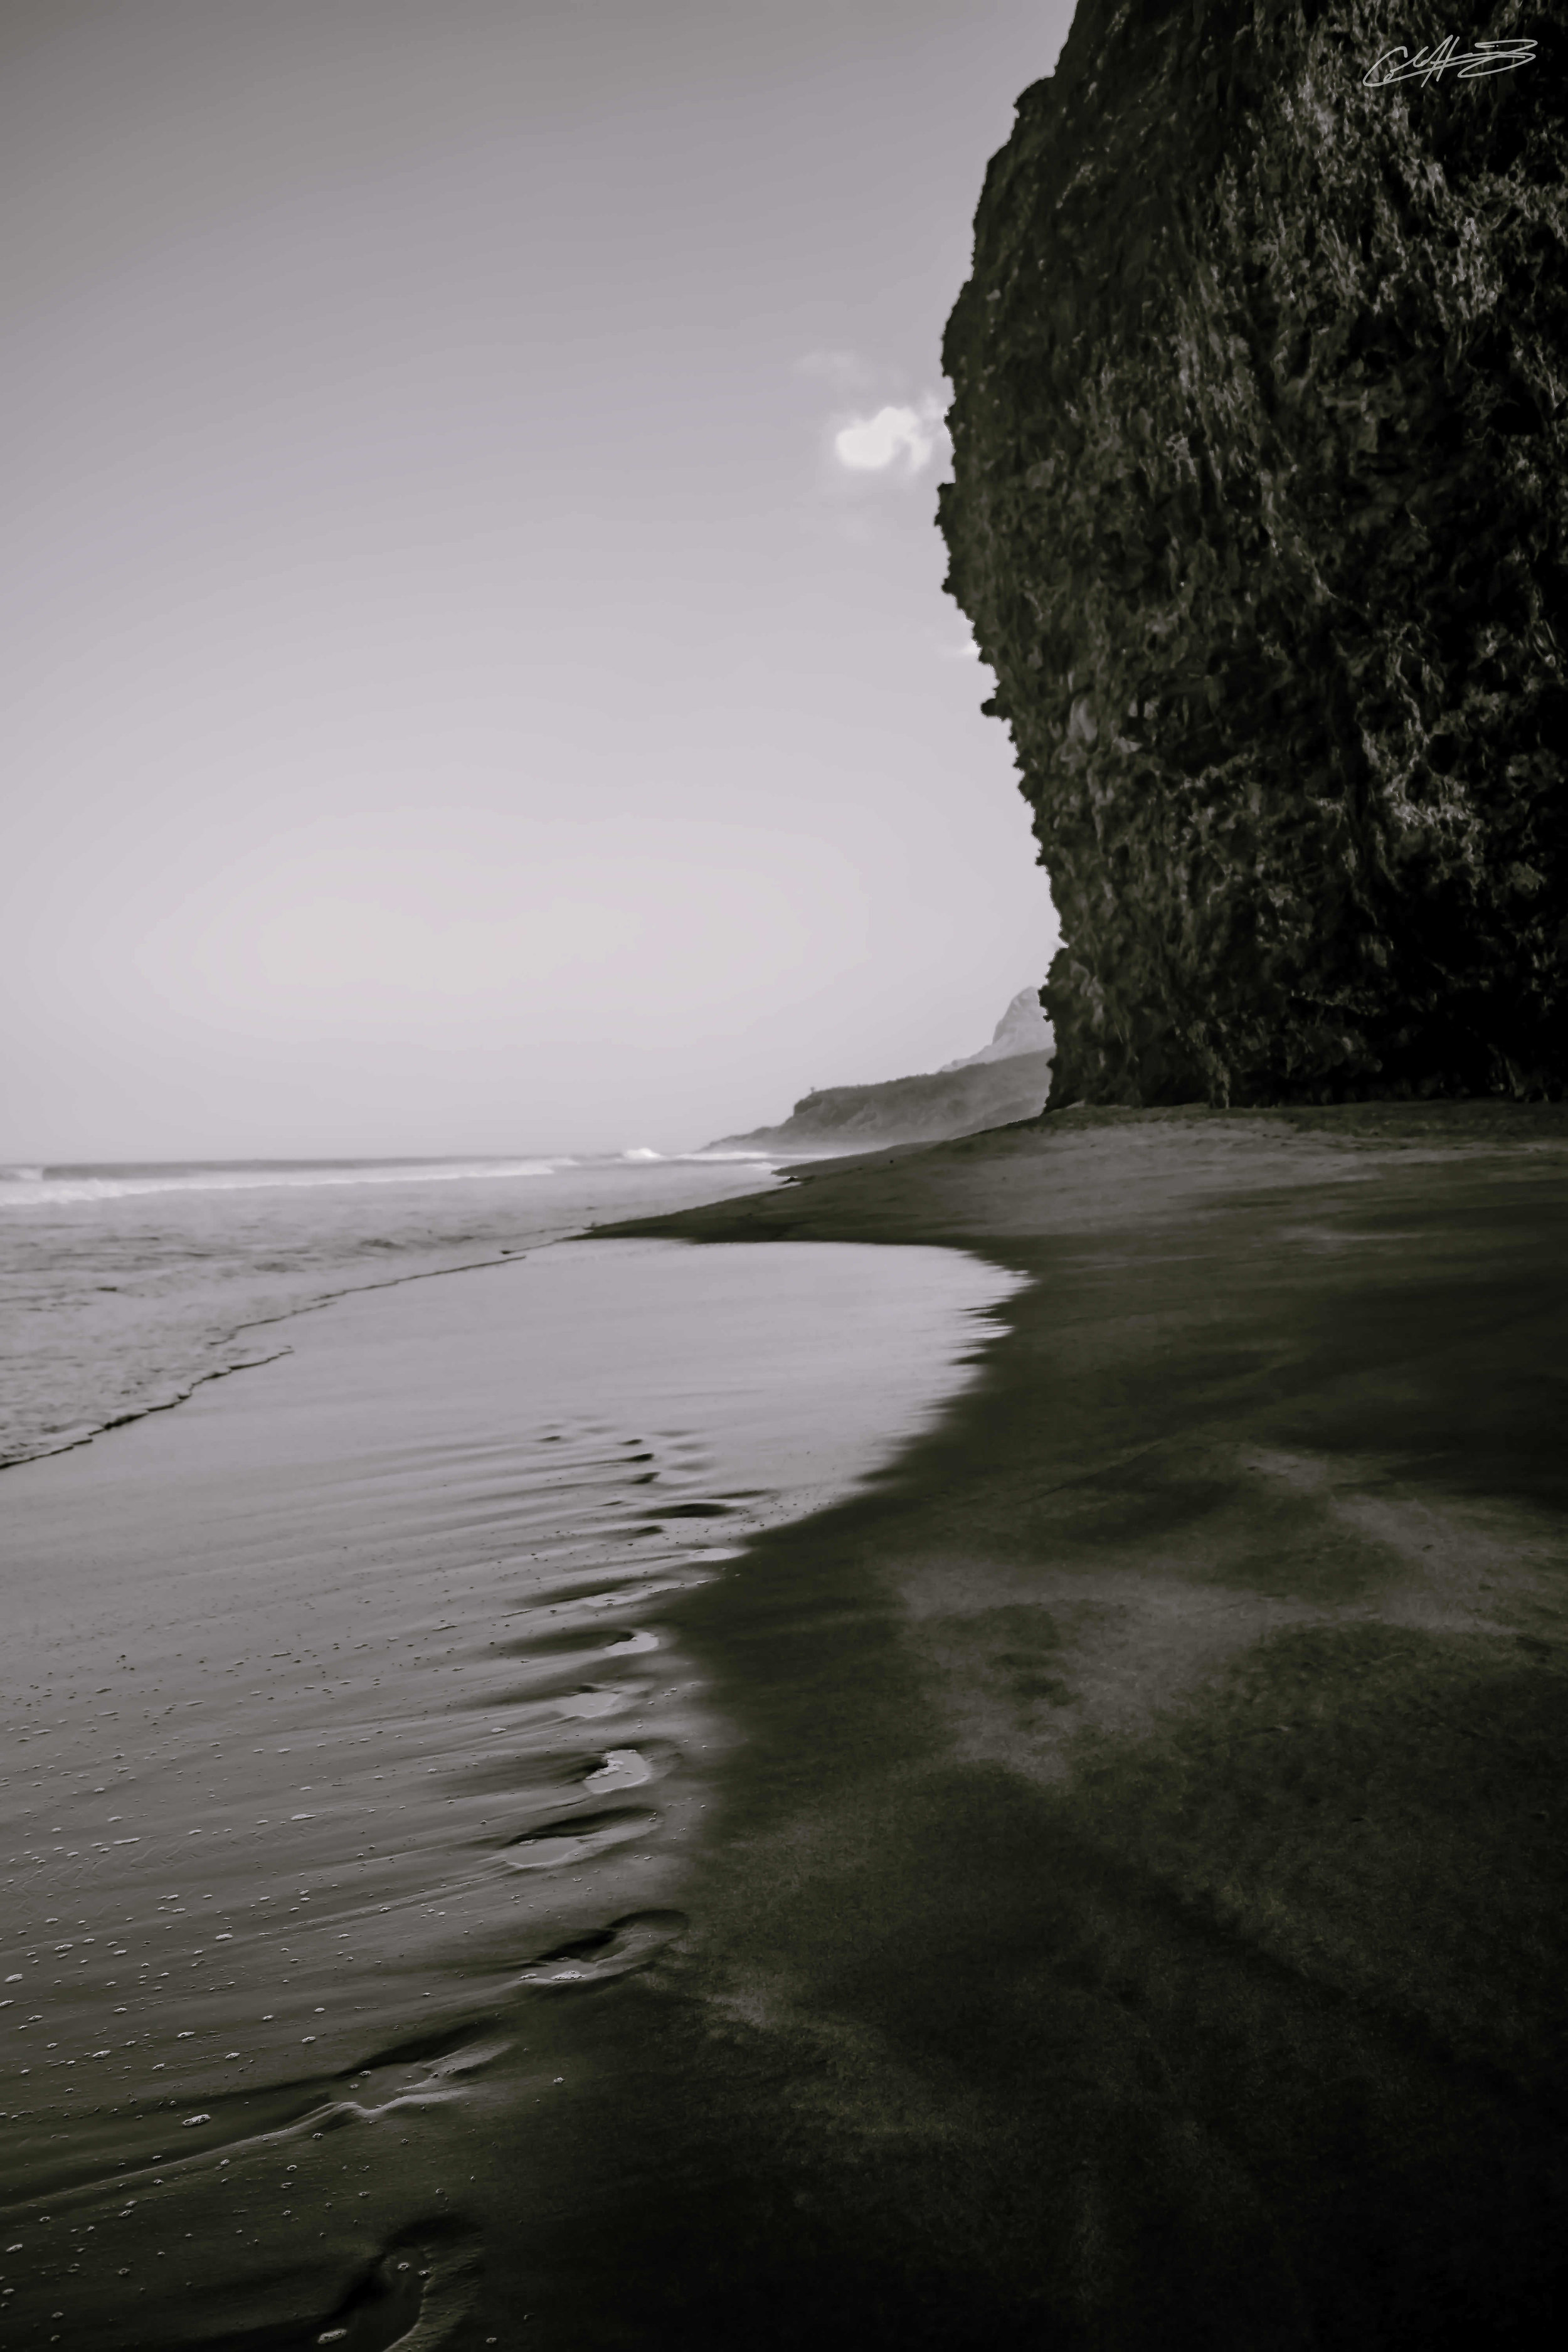 Kalalau Beach B&W wall art edit optimized.jpg